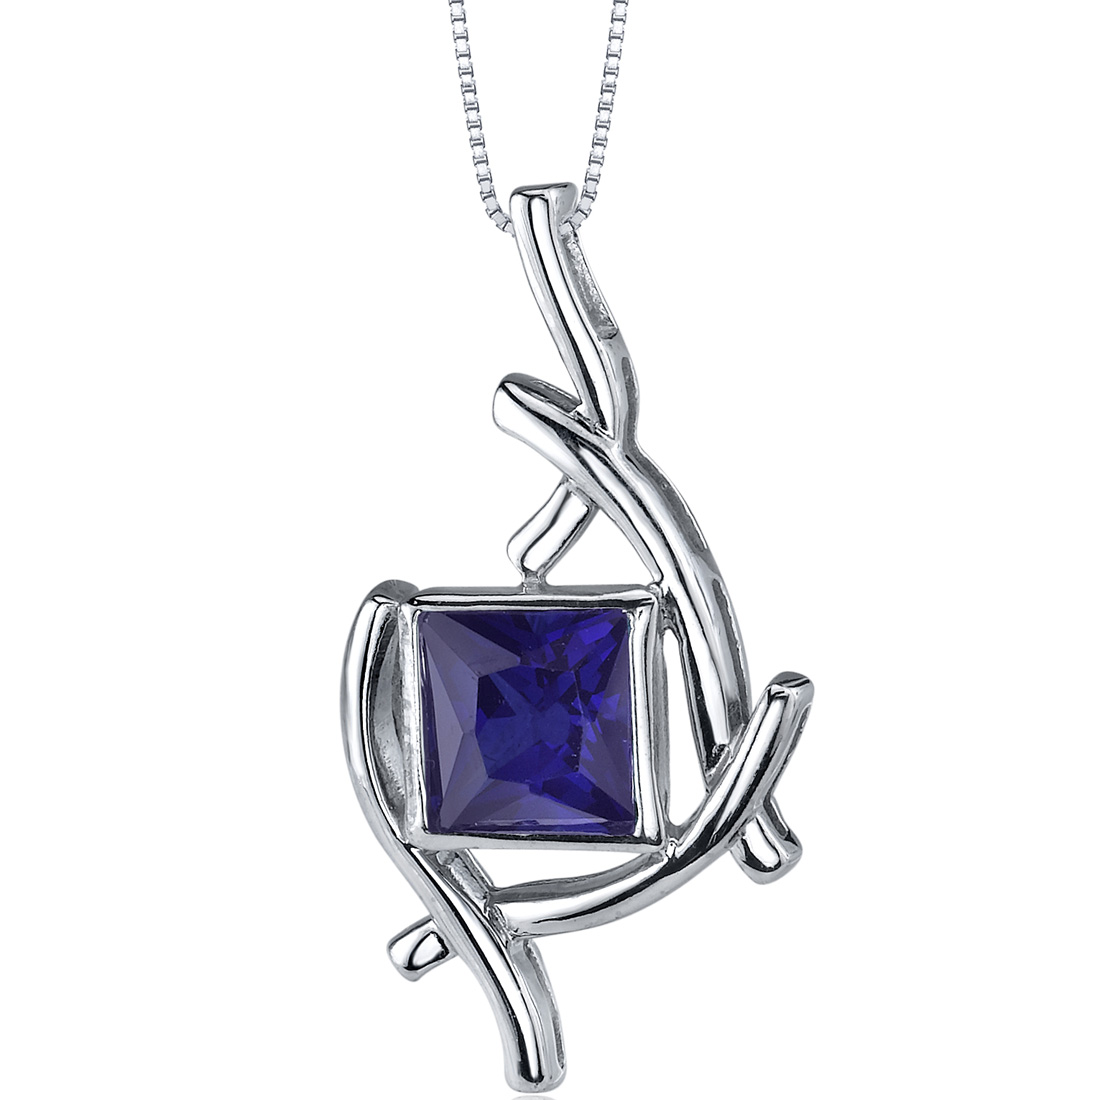 peora Artistic Design 2.25 carats Princess Cut Sterling Silver Blue Sapphire Pendant at Sears.com